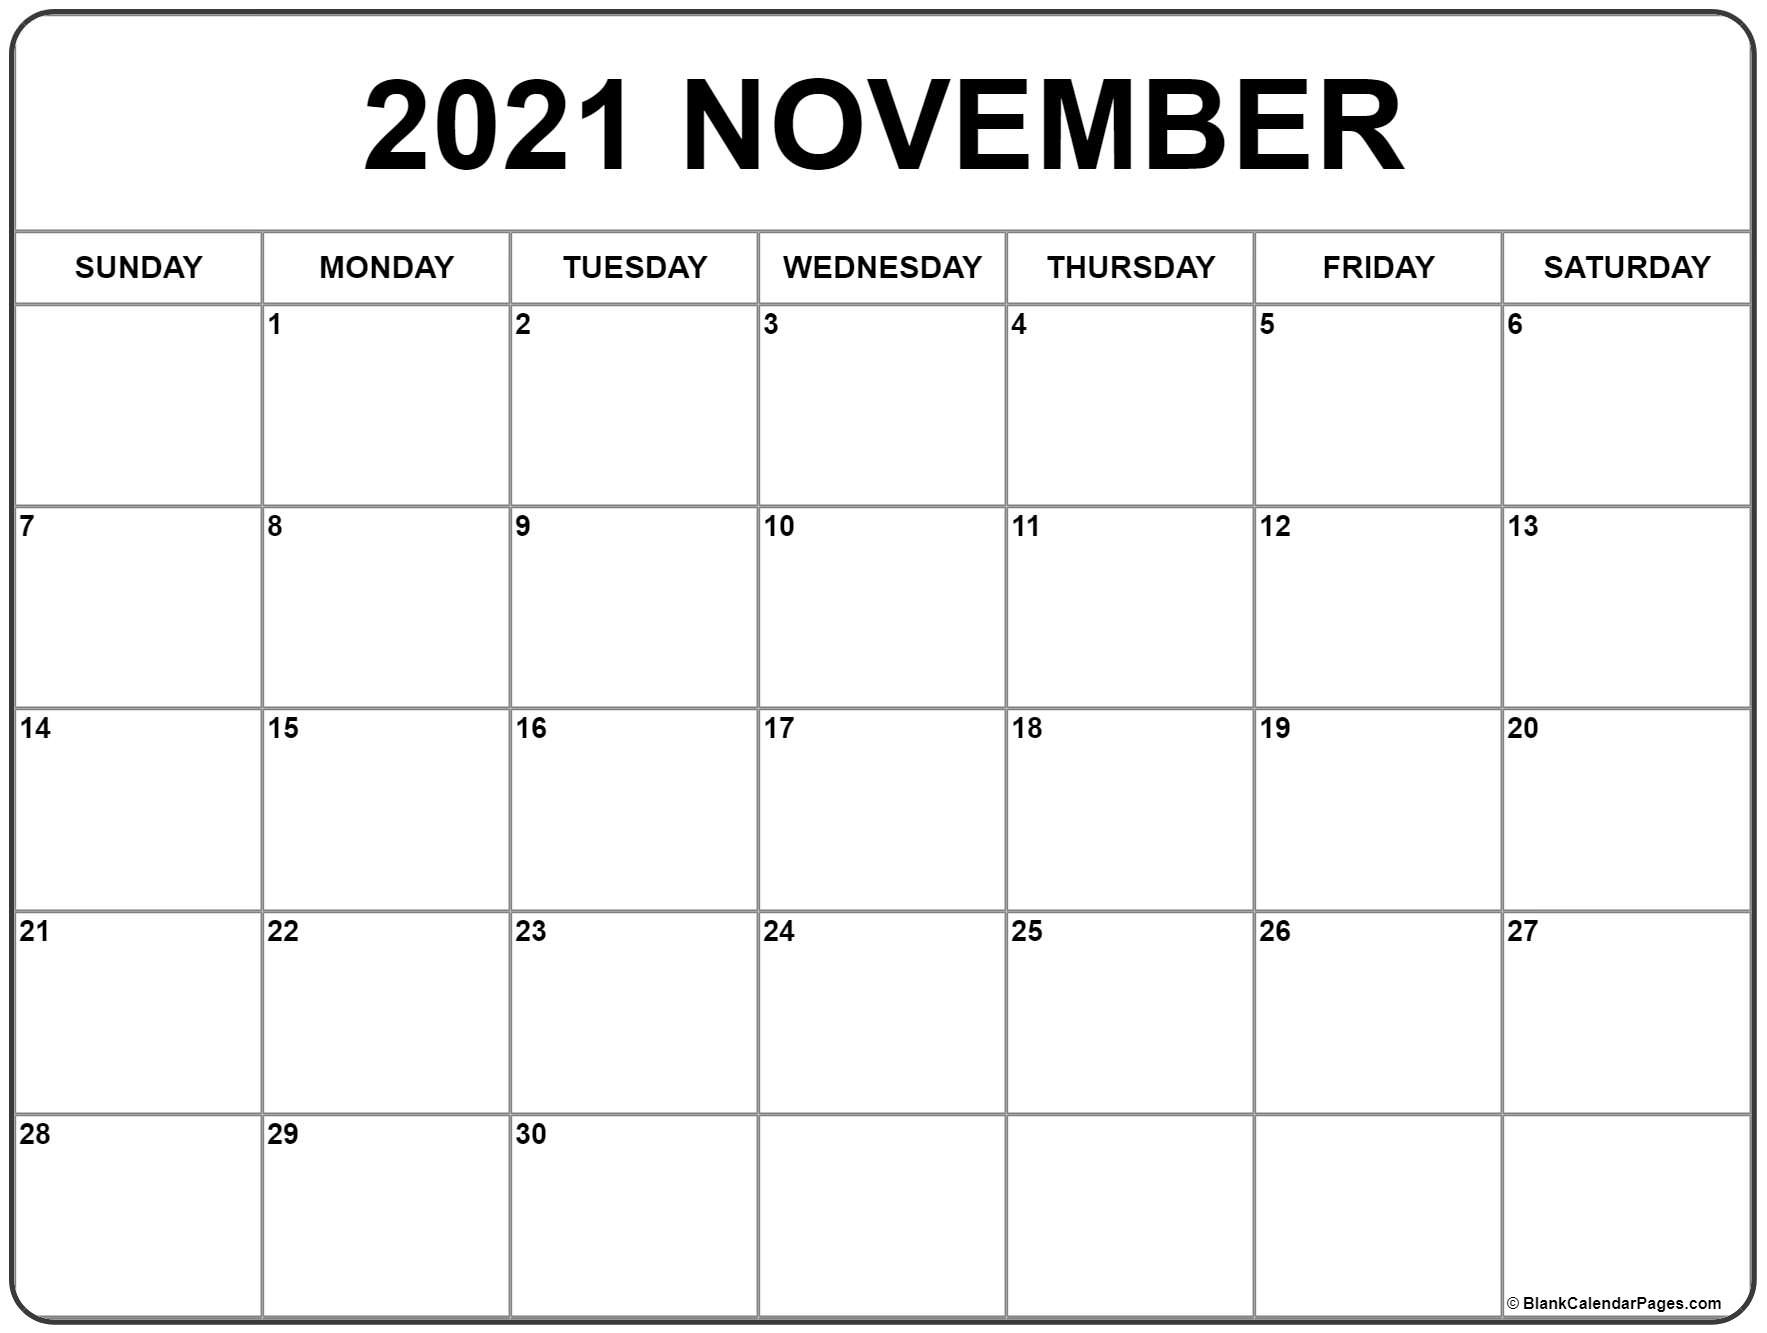 November 2021 Calendar | Free Printable Monthly Calendars  2021 Free Printable Calendars Without Downloading November